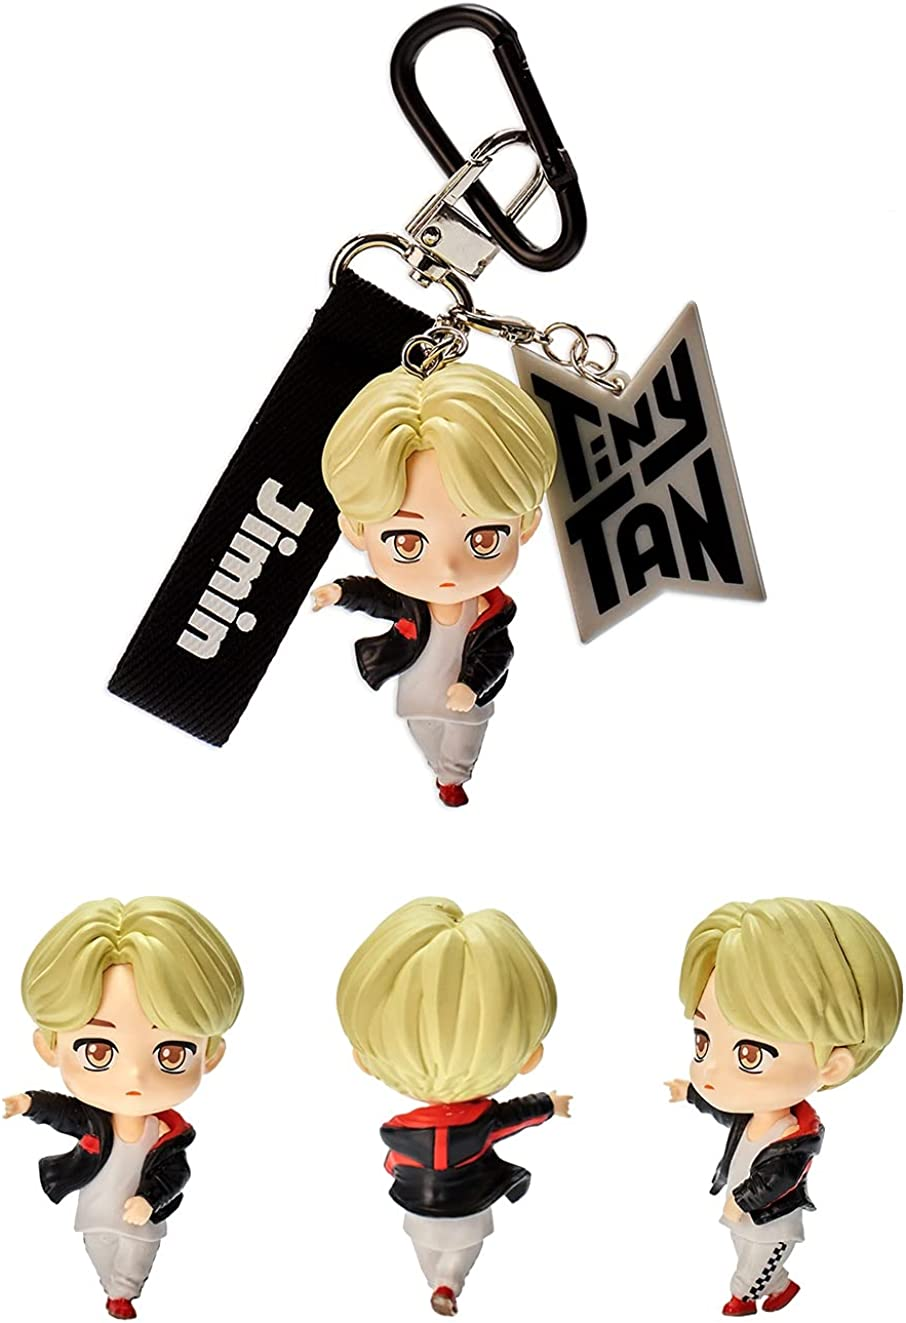 BTS Tinytan Figures Keychain Keyring Kpop Merchandise Bag Accessory Official Authentic Figurines